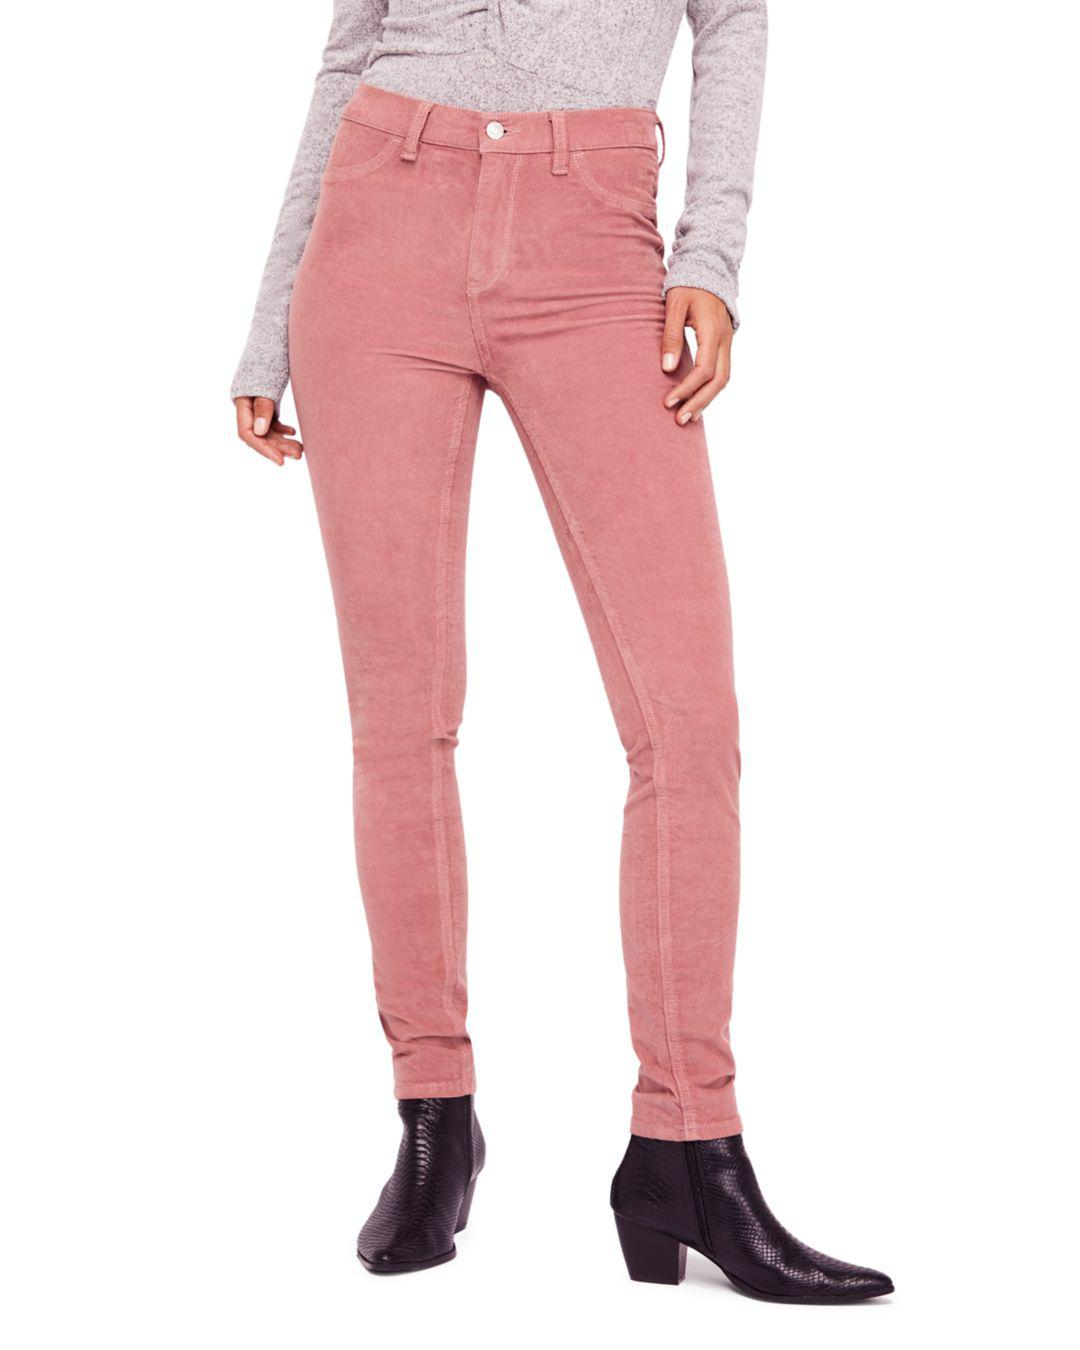 9ab52e6126 Free People Corduroy Skinny Jeans In Mauve in Purple - Lyst